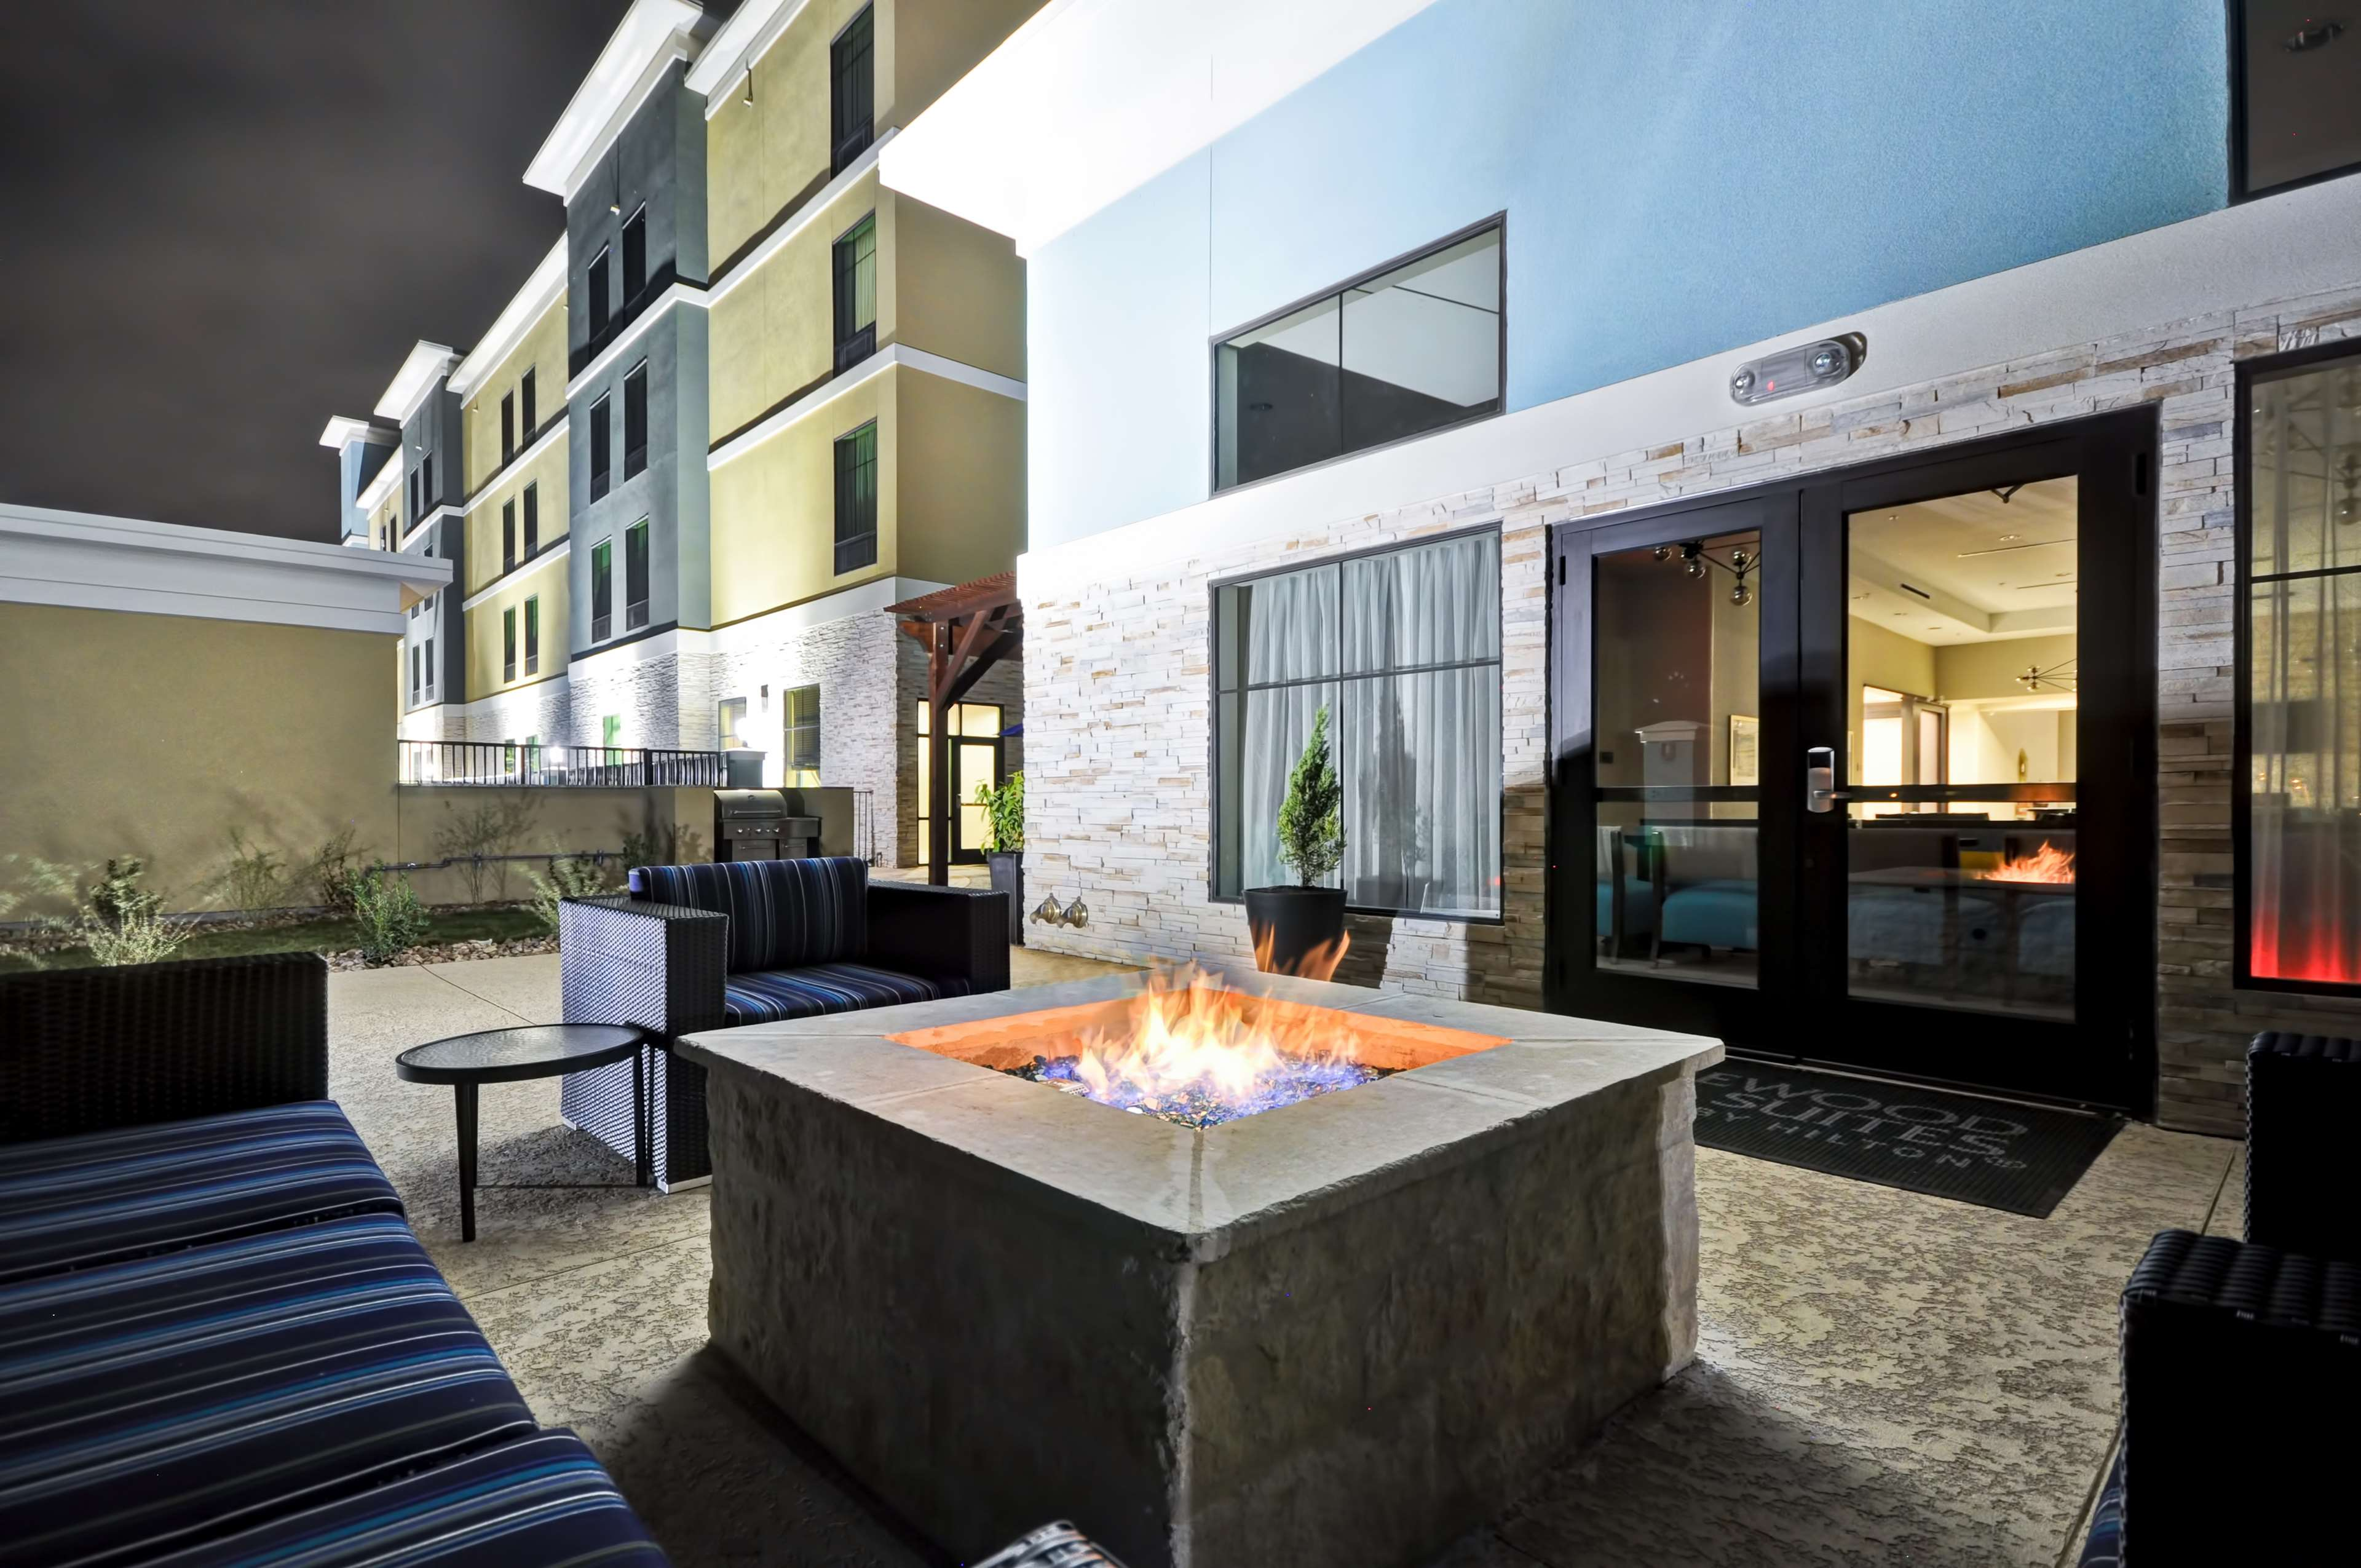 Homewood Suites by Hilton New Braunfels image 7